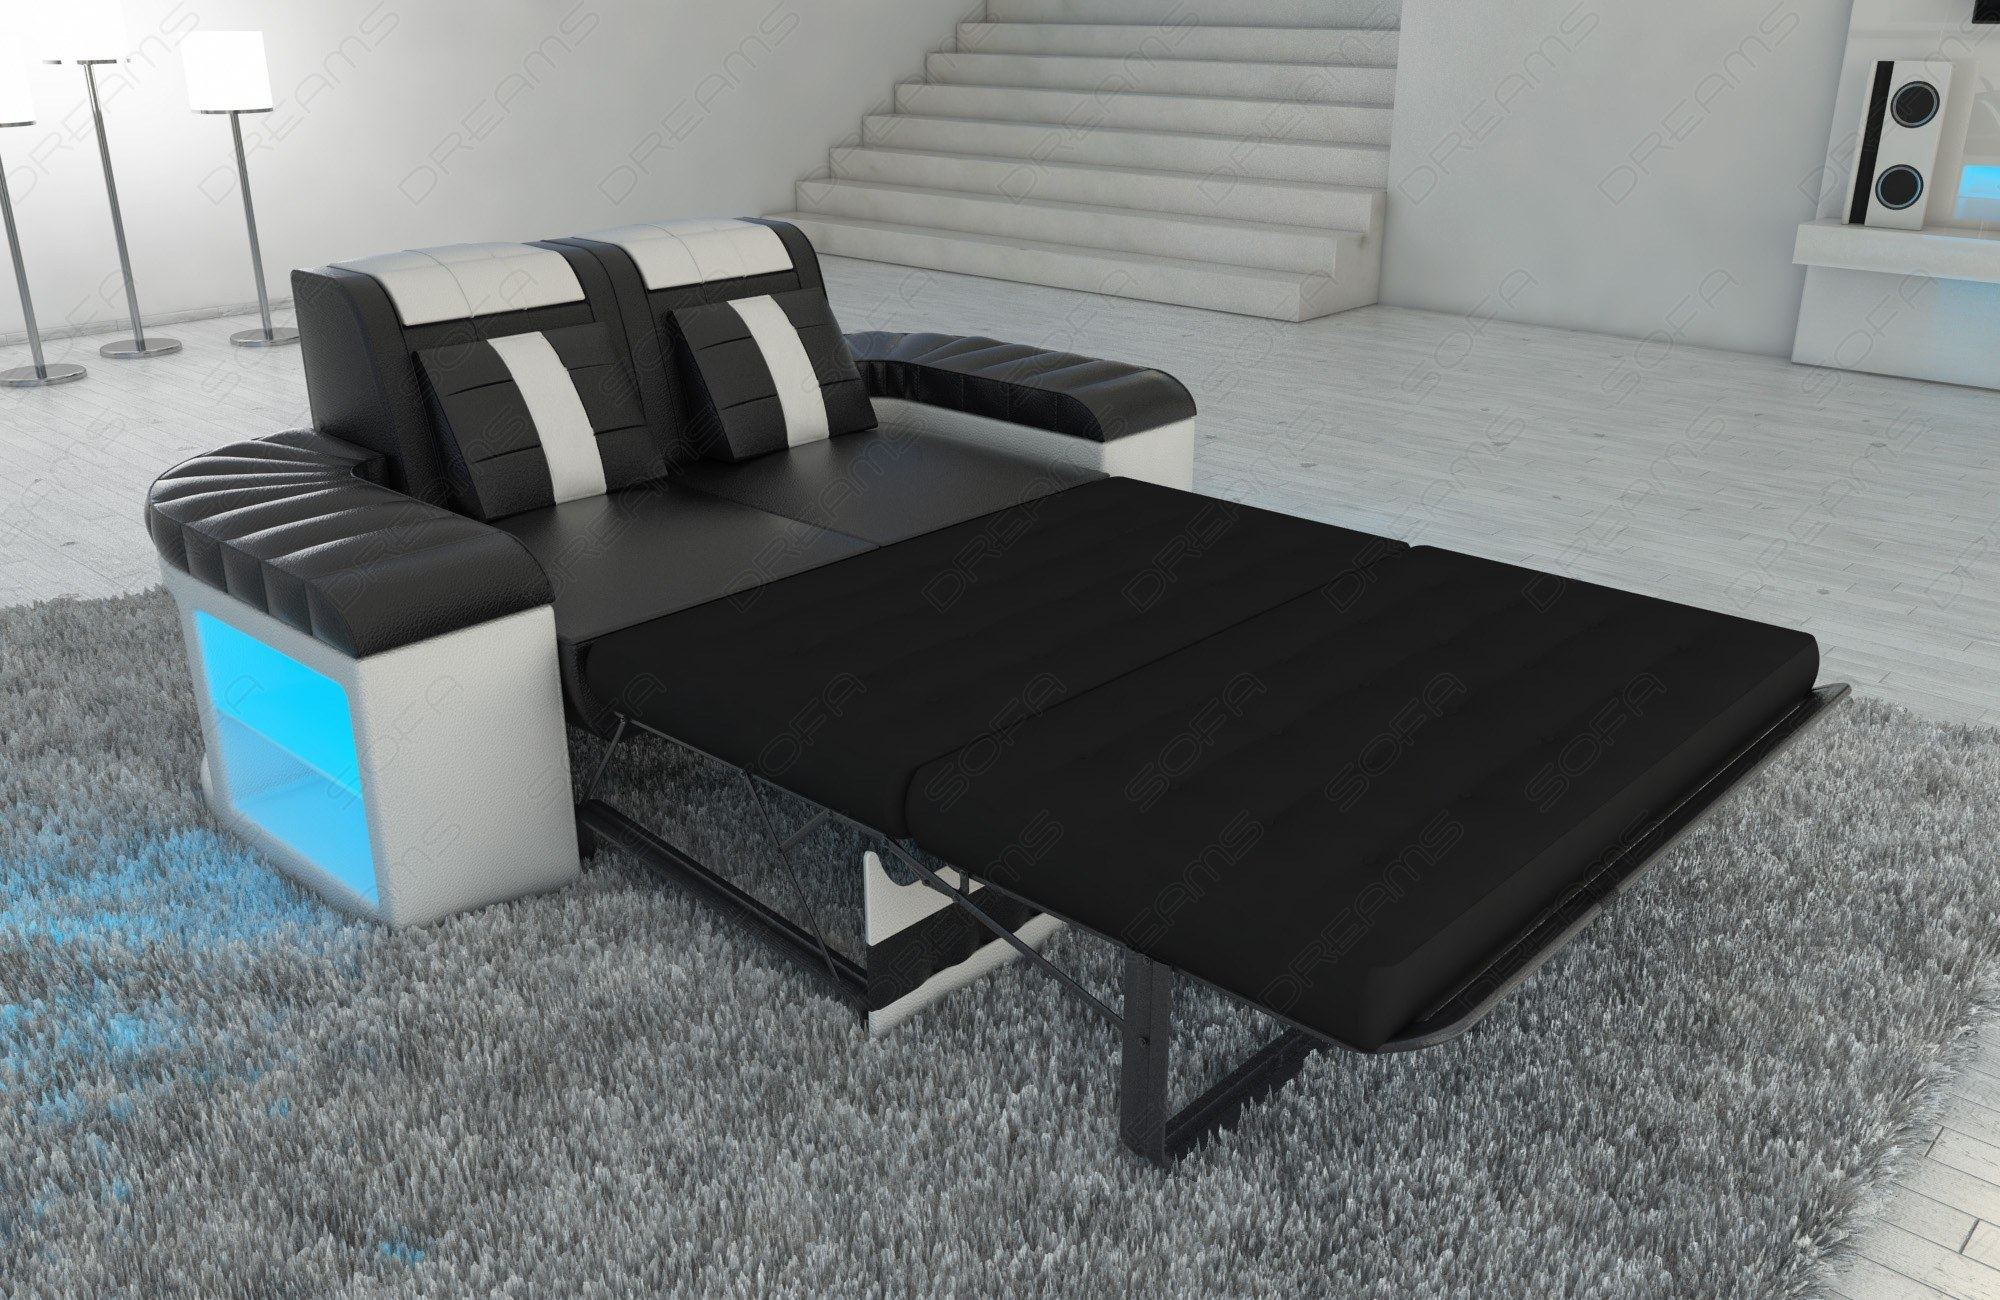 sofa garnitur couch garnitur design bellagio 3 2 1 led ledersofa schwarz weiss ebay. Black Bedroom Furniture Sets. Home Design Ideas